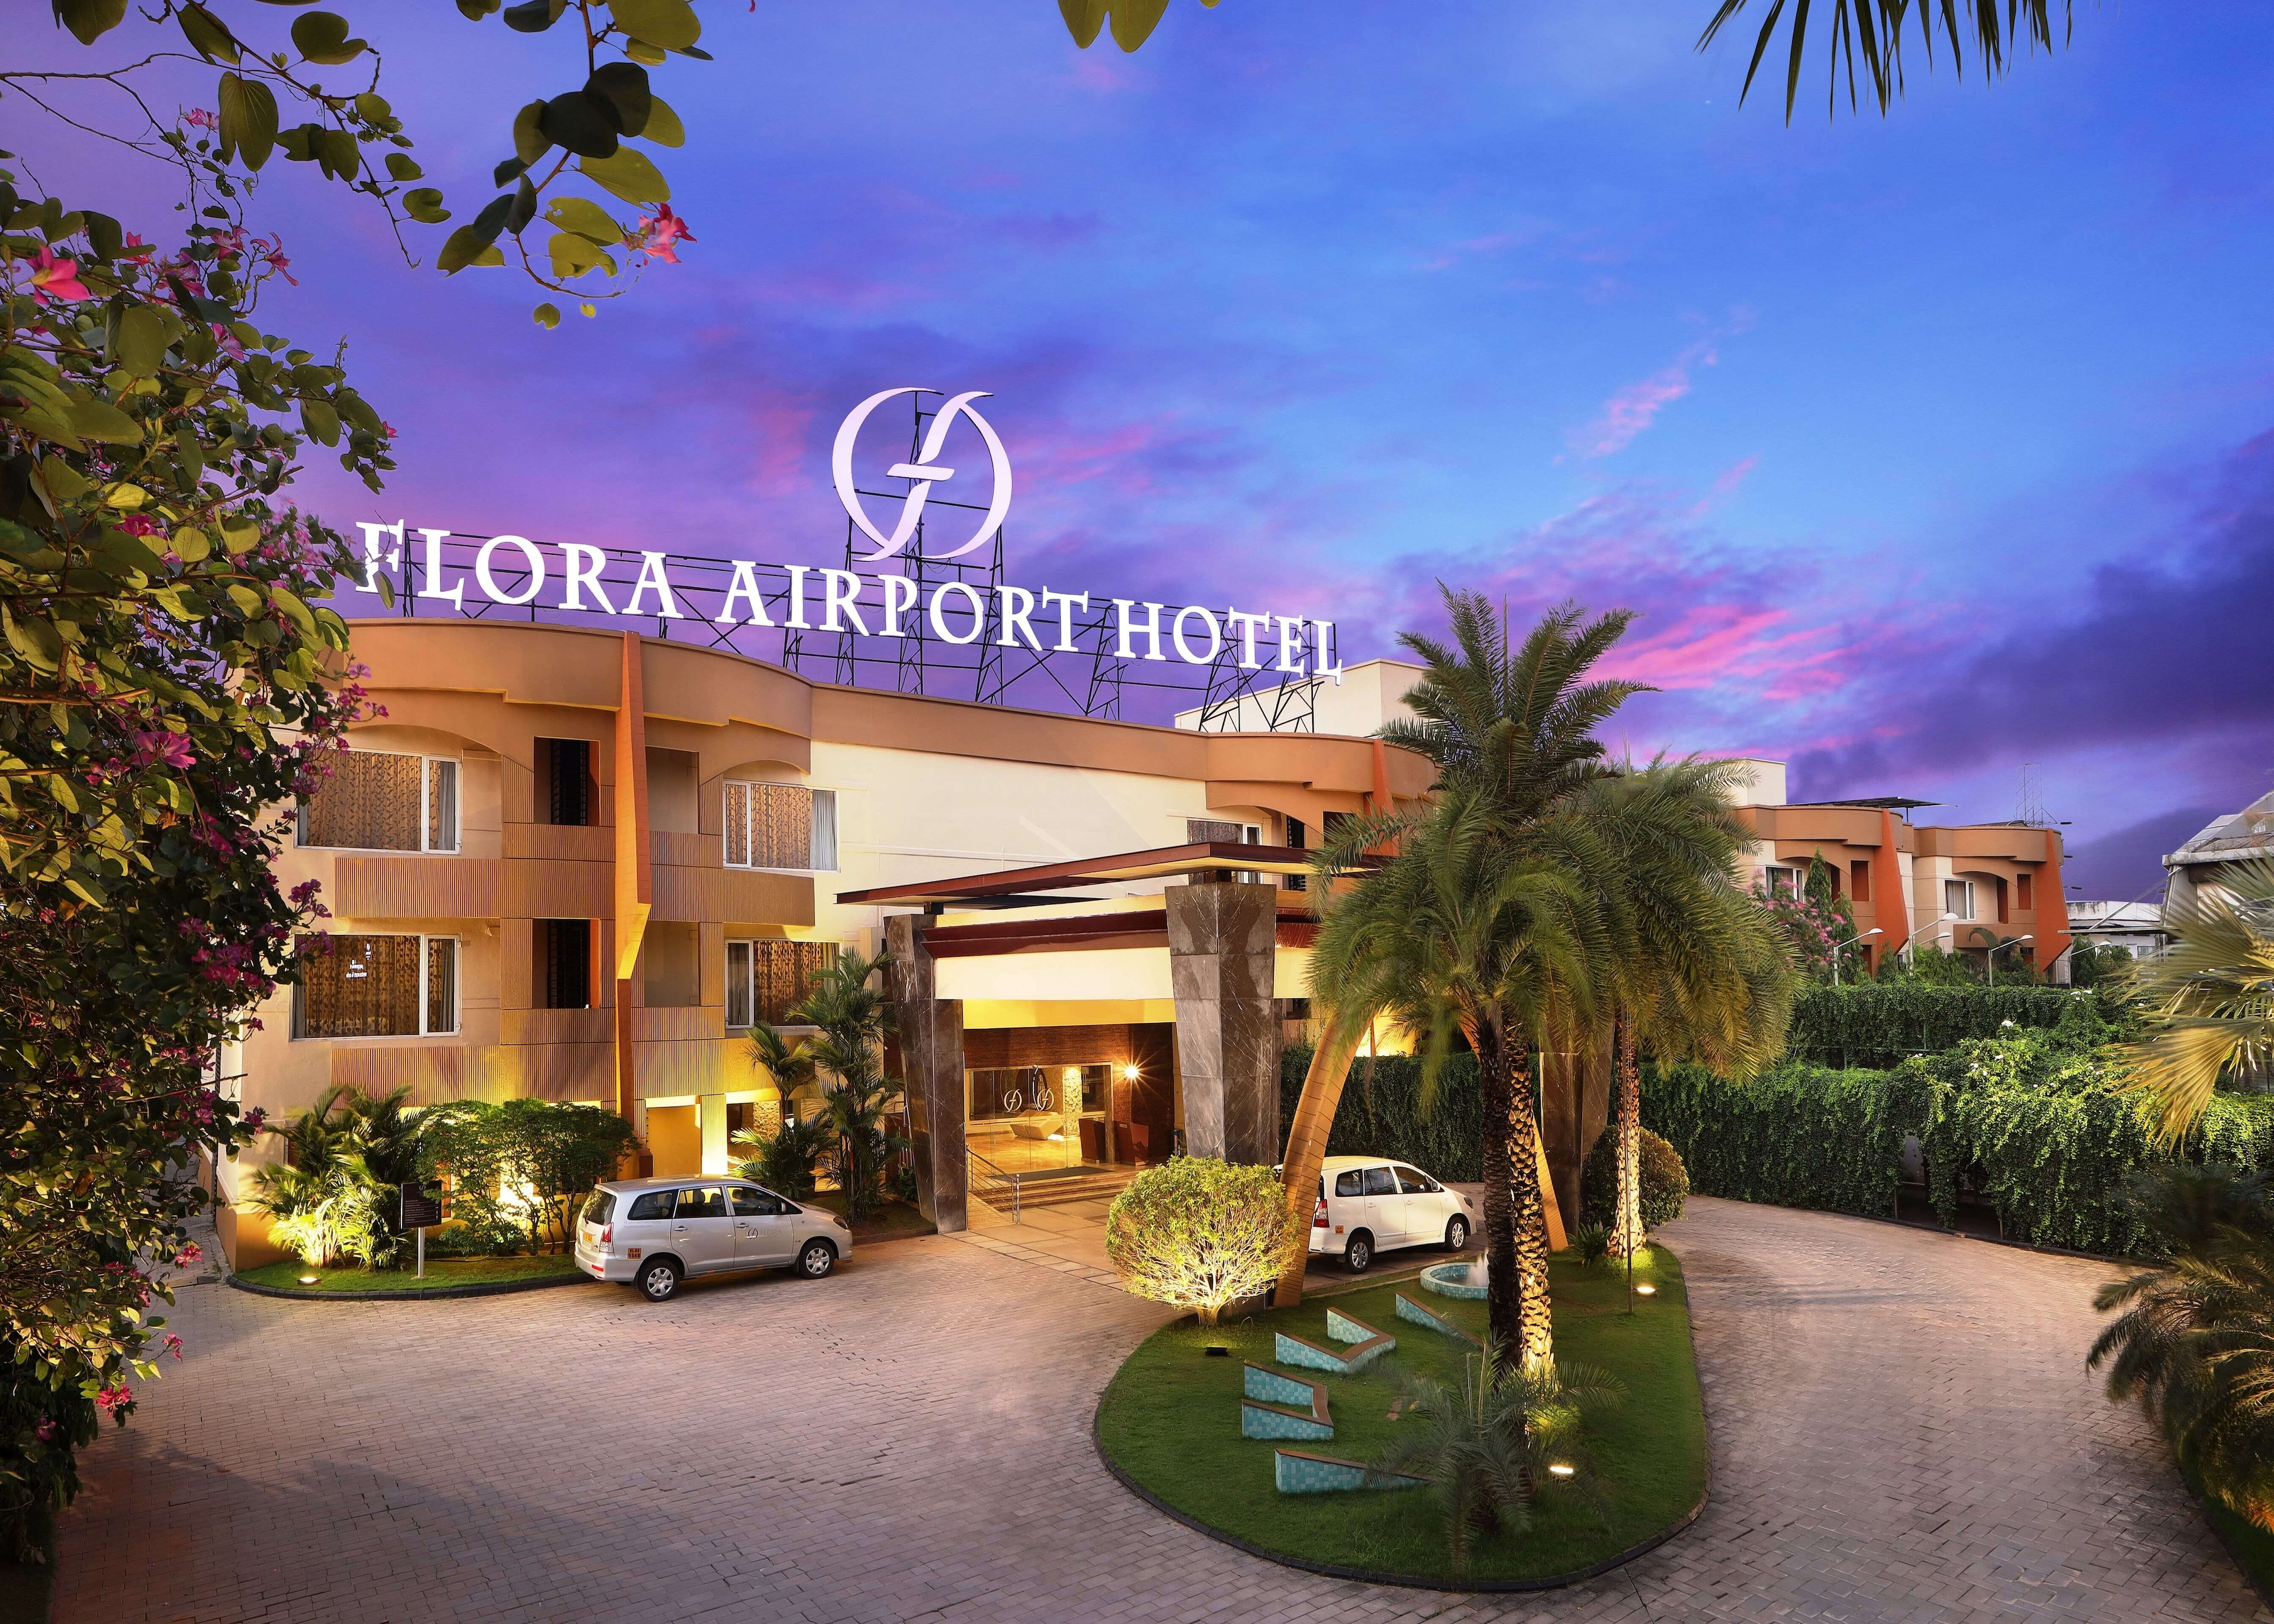 flora airport hotel official site | kochi kerala india | overview